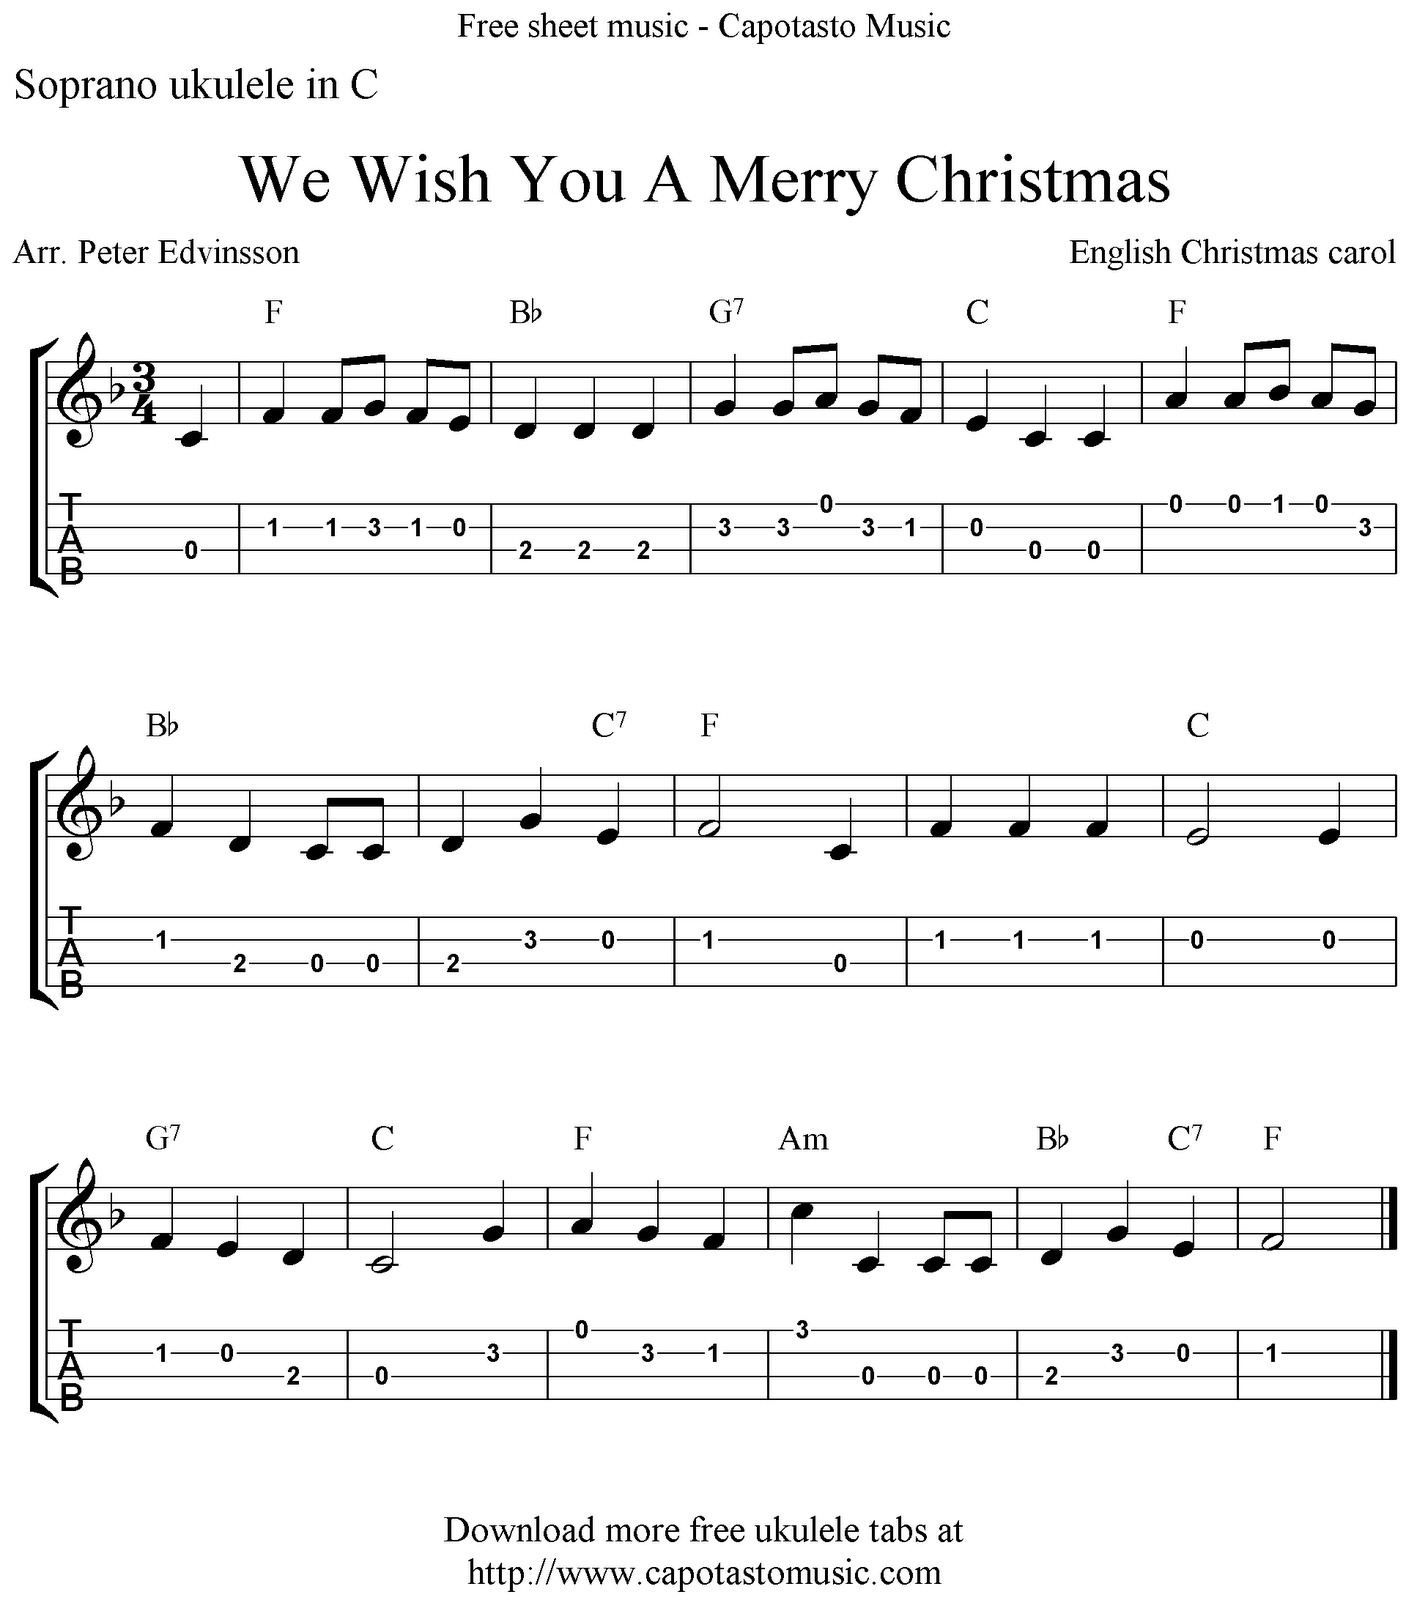 Free Sheet Music Scores We Wish You A Merry Christmas Free Christmas Ukulele Tabs Sheet Music Christmas Ukulele Ukulele Tabs Ukulele Tabs Songs